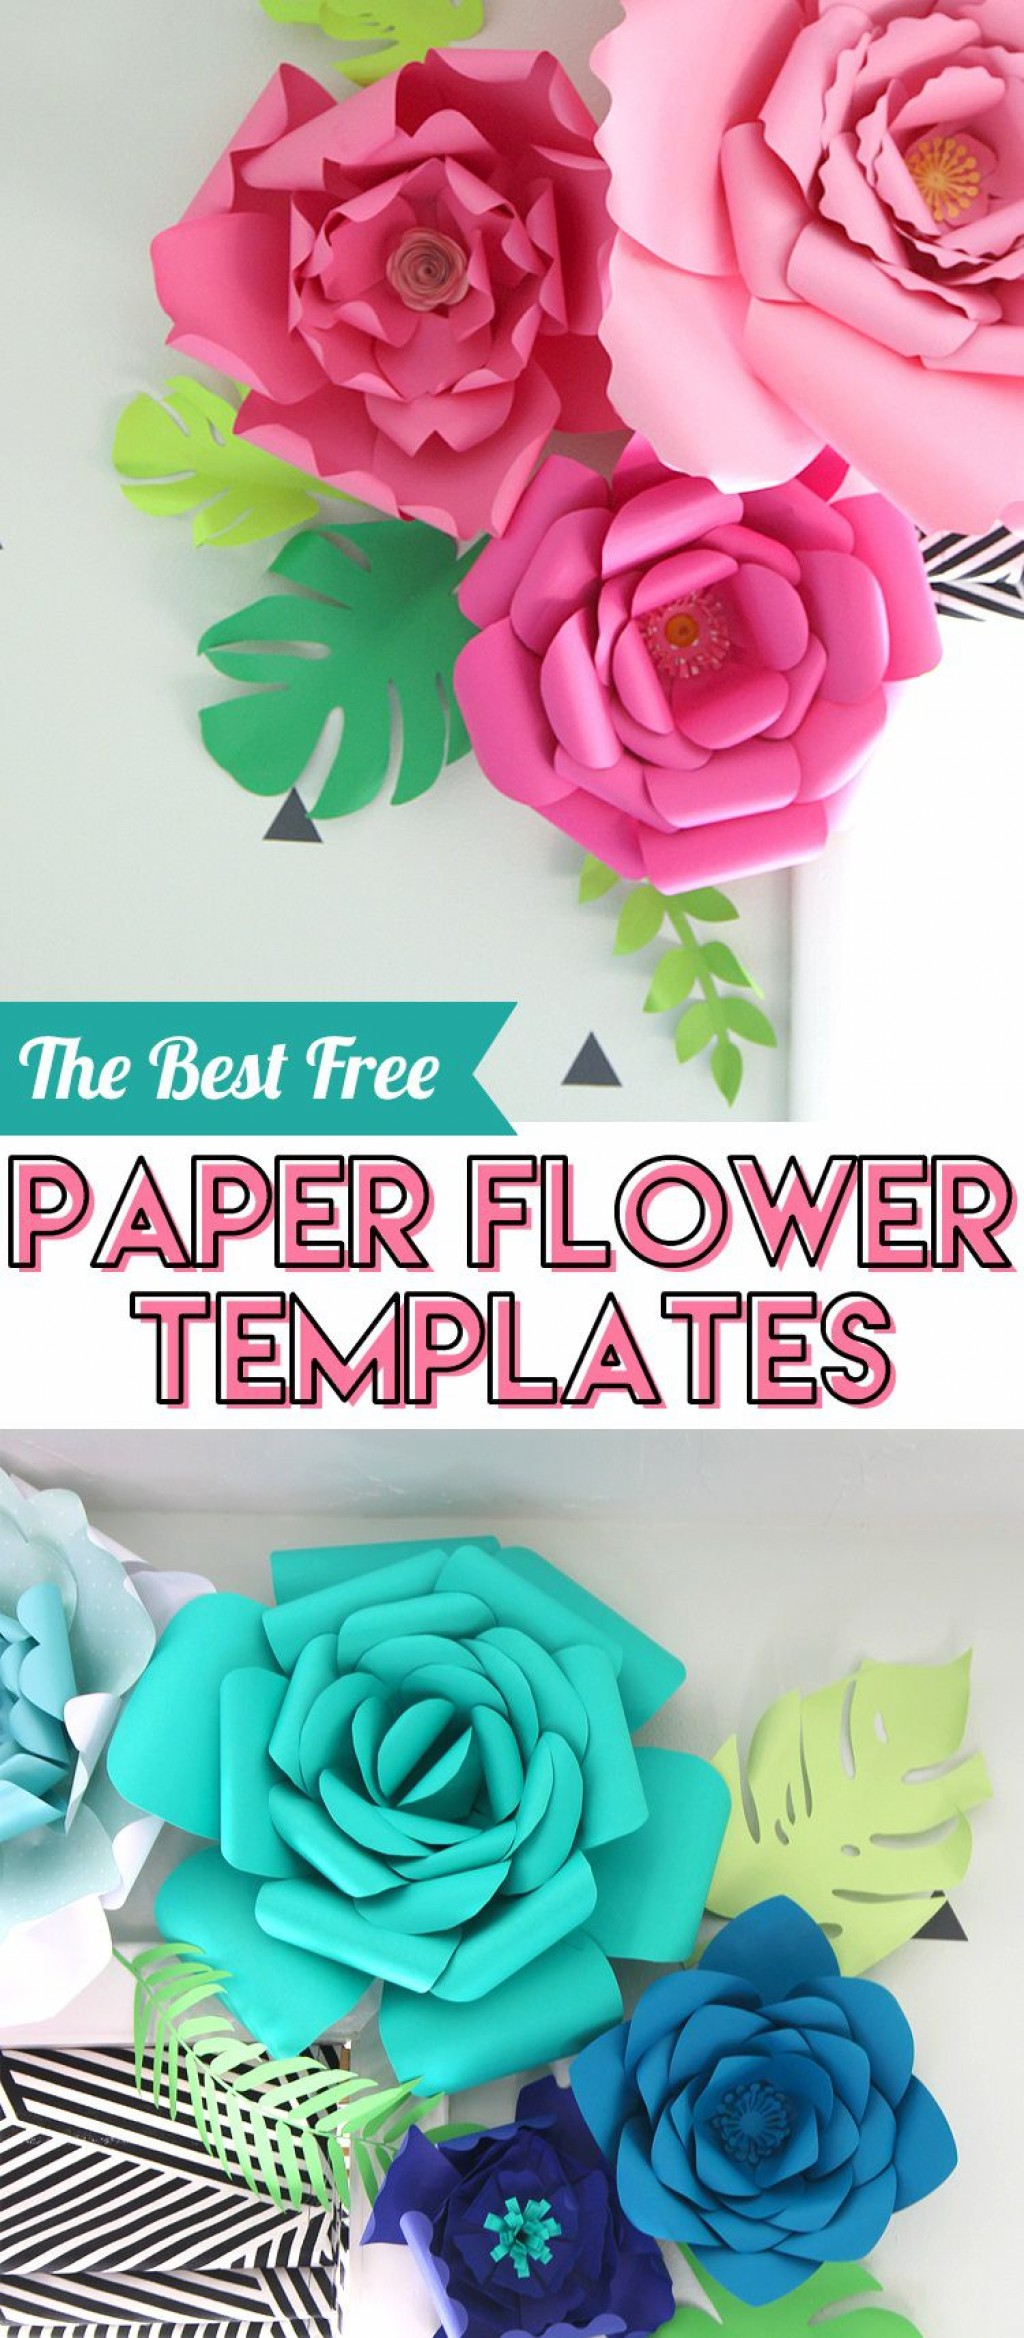 008 Best Large Rose Paper Flower Template Free Picture Large